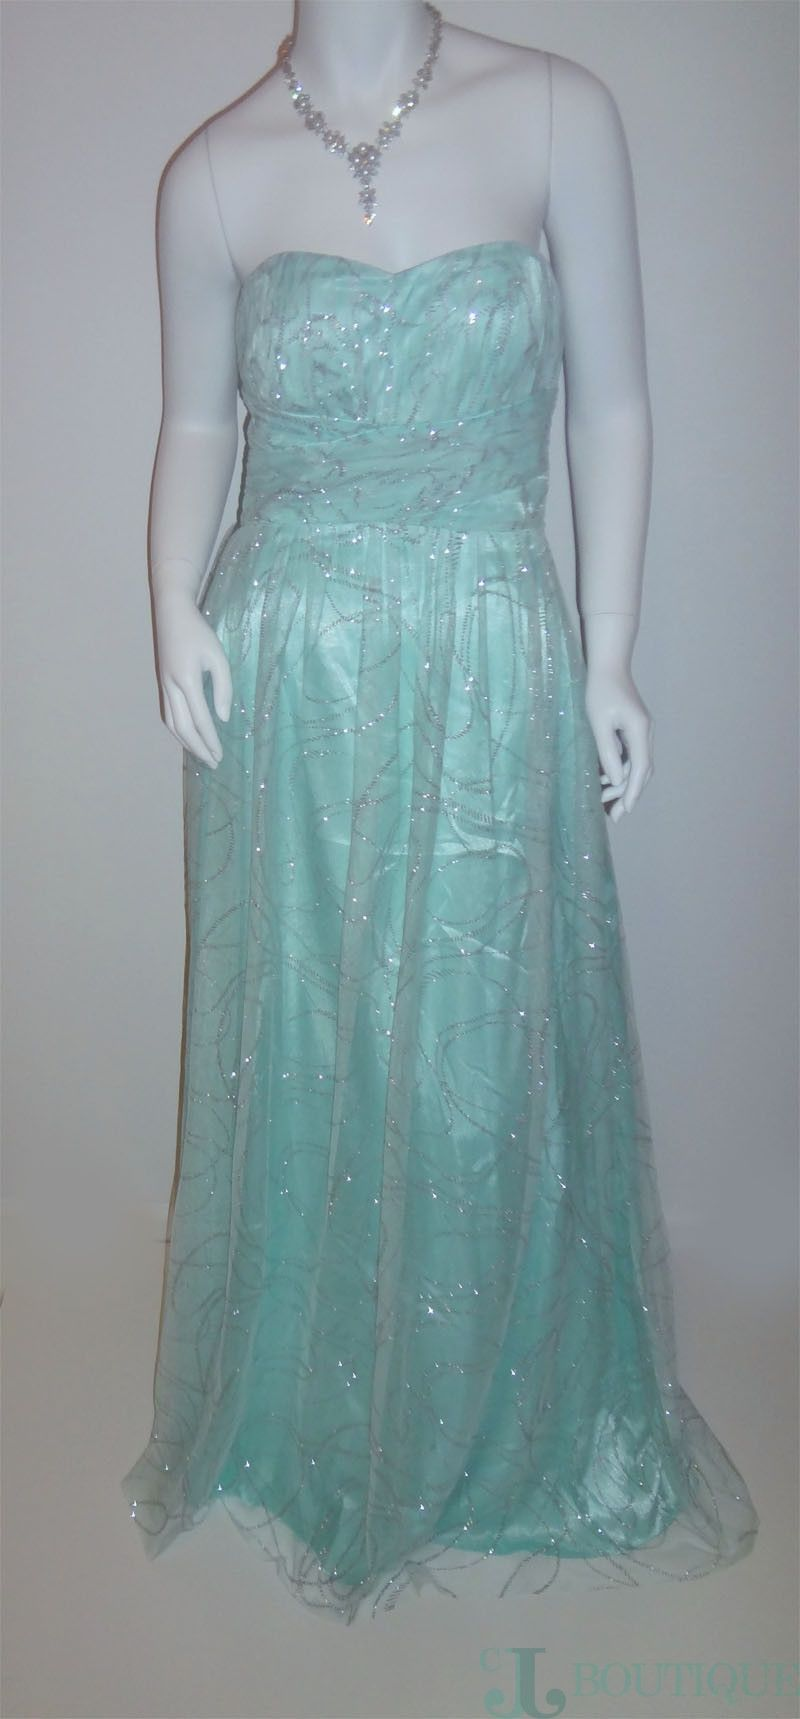 Blue strapless dress strapless dress prom night and night parties